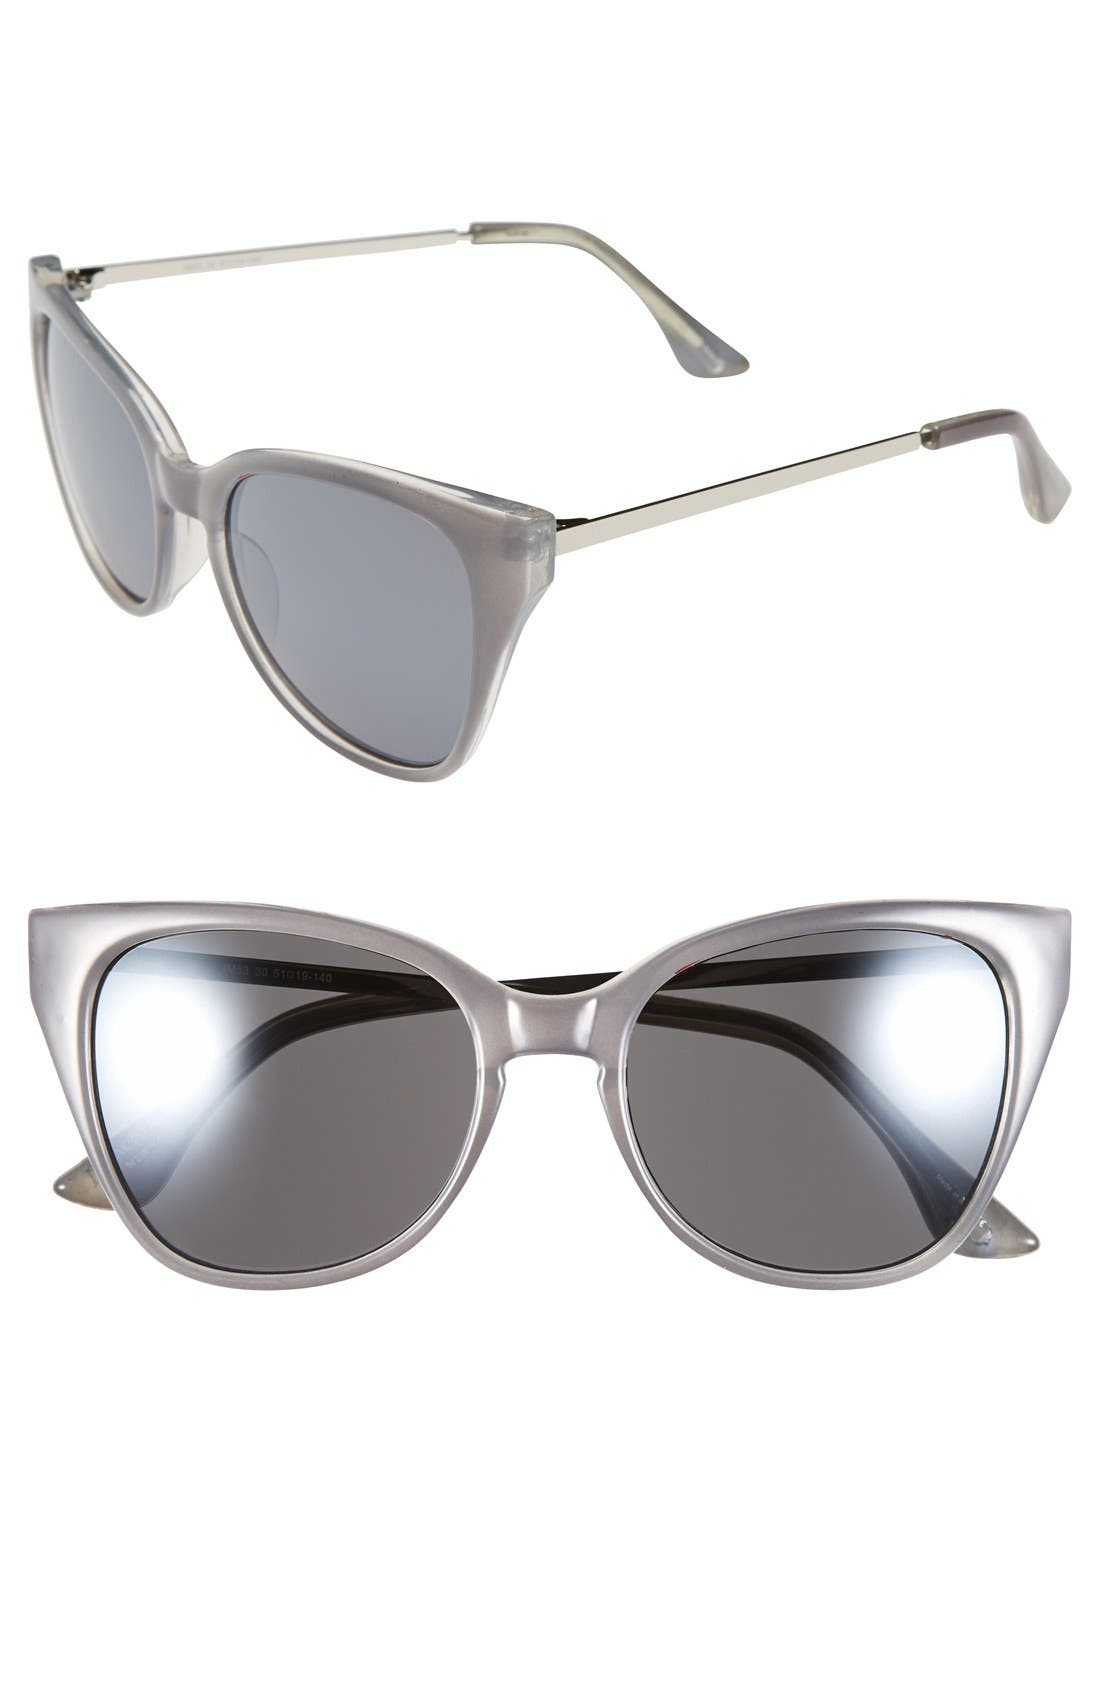 Main Image - Isaac Mizrahi New York 51mm Retro Sunglasses